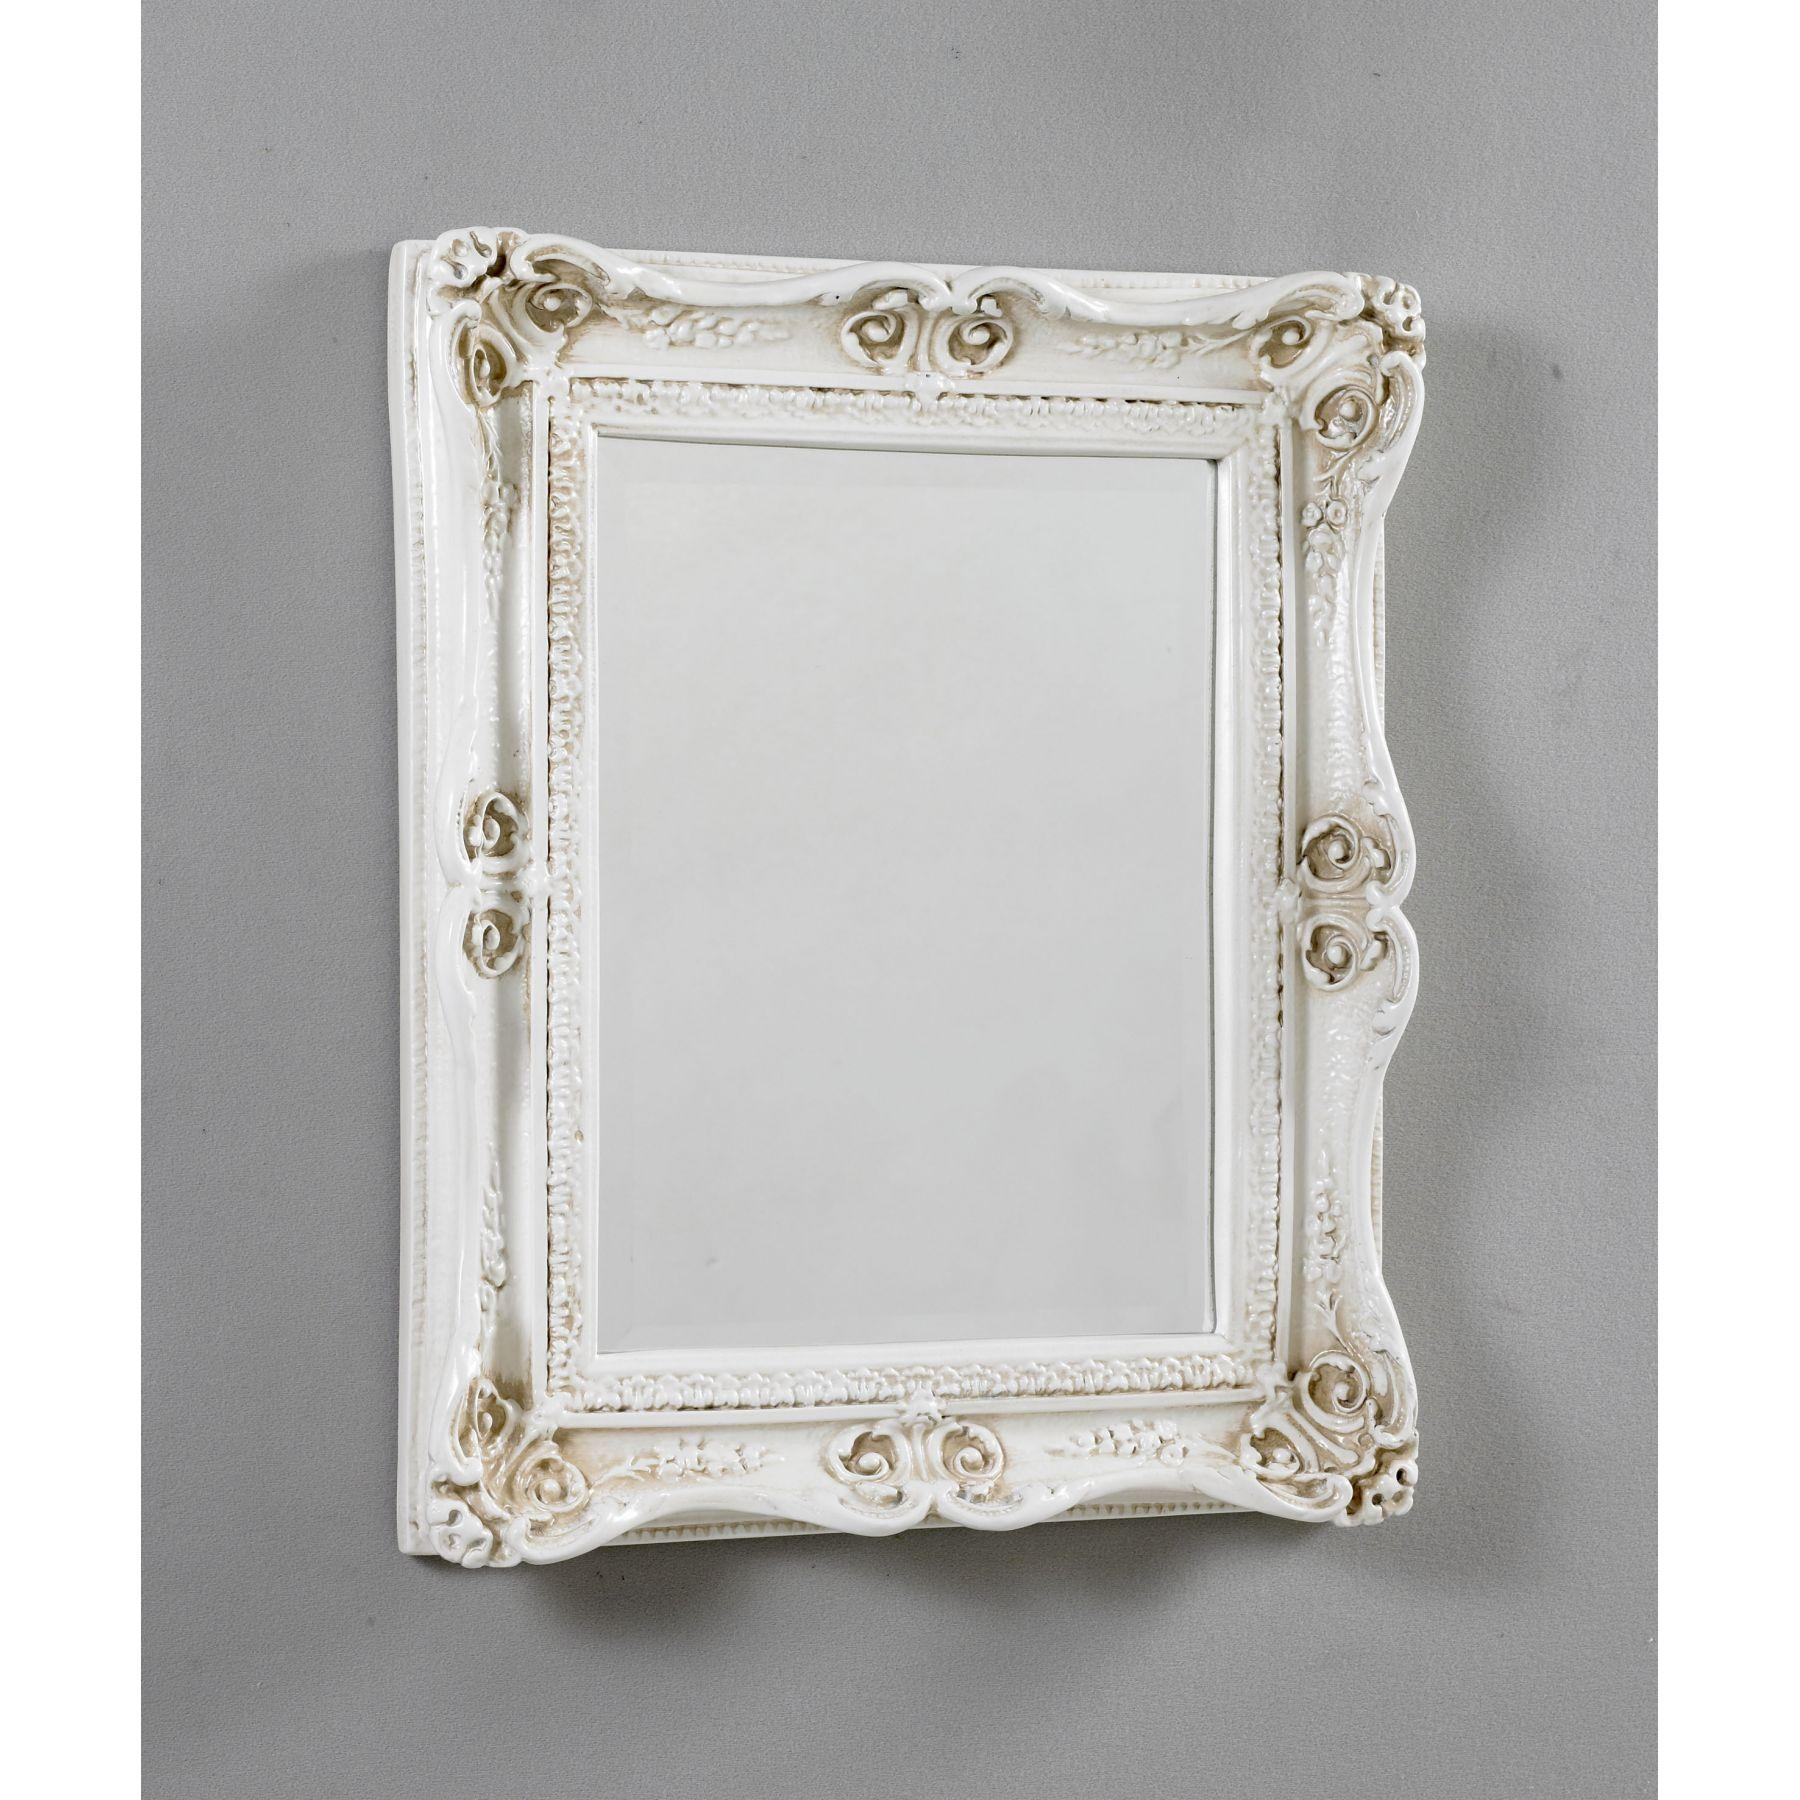 Old Mirrors For Sale 105 Fascinating Ideas On Antique Mirrors Inside Antique Mirrors For Sale Vintage Mirrors (Image 12 of 20)